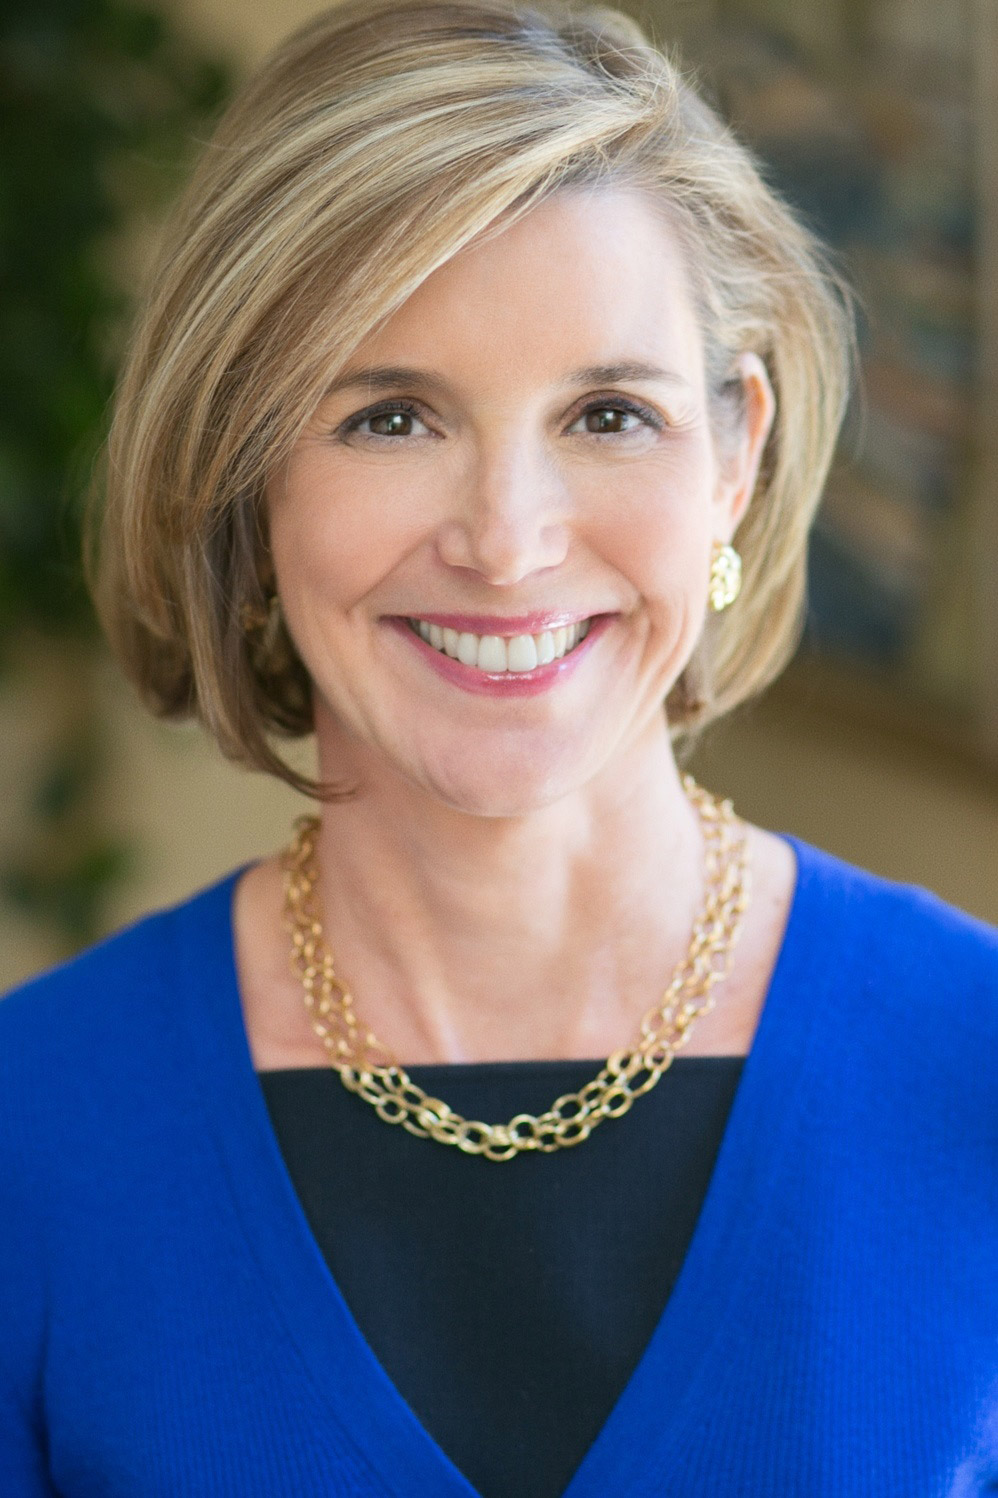 Sallie Krawcheck of Ellevest: Invest Like a Woman